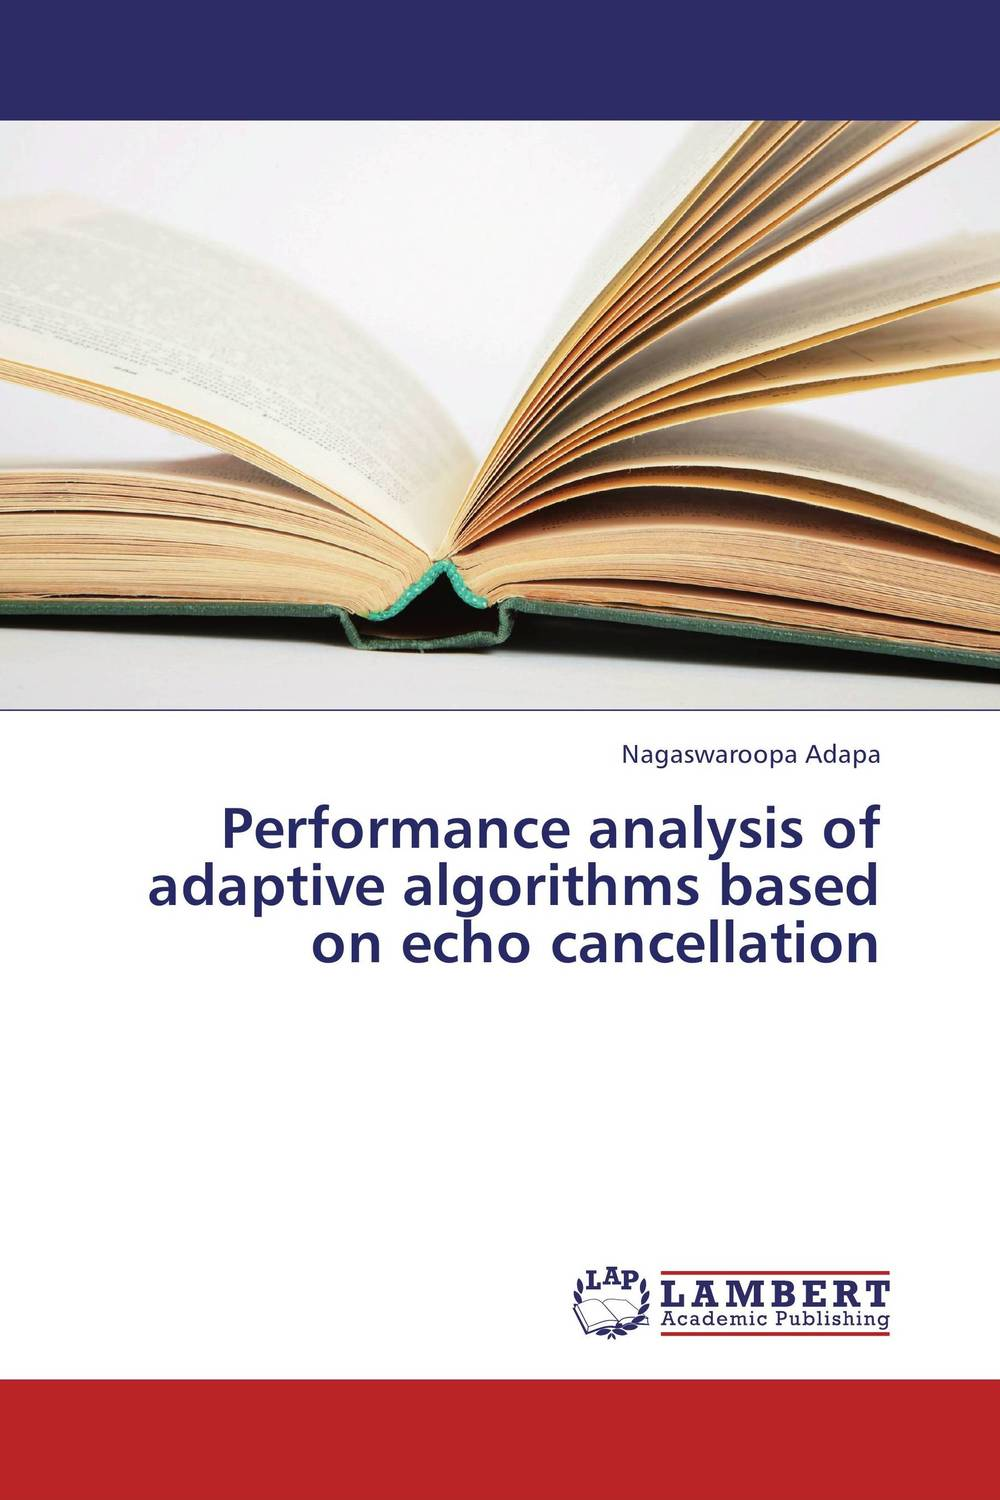 цены Performance analysis of adaptive algorithms based on echo cancellation